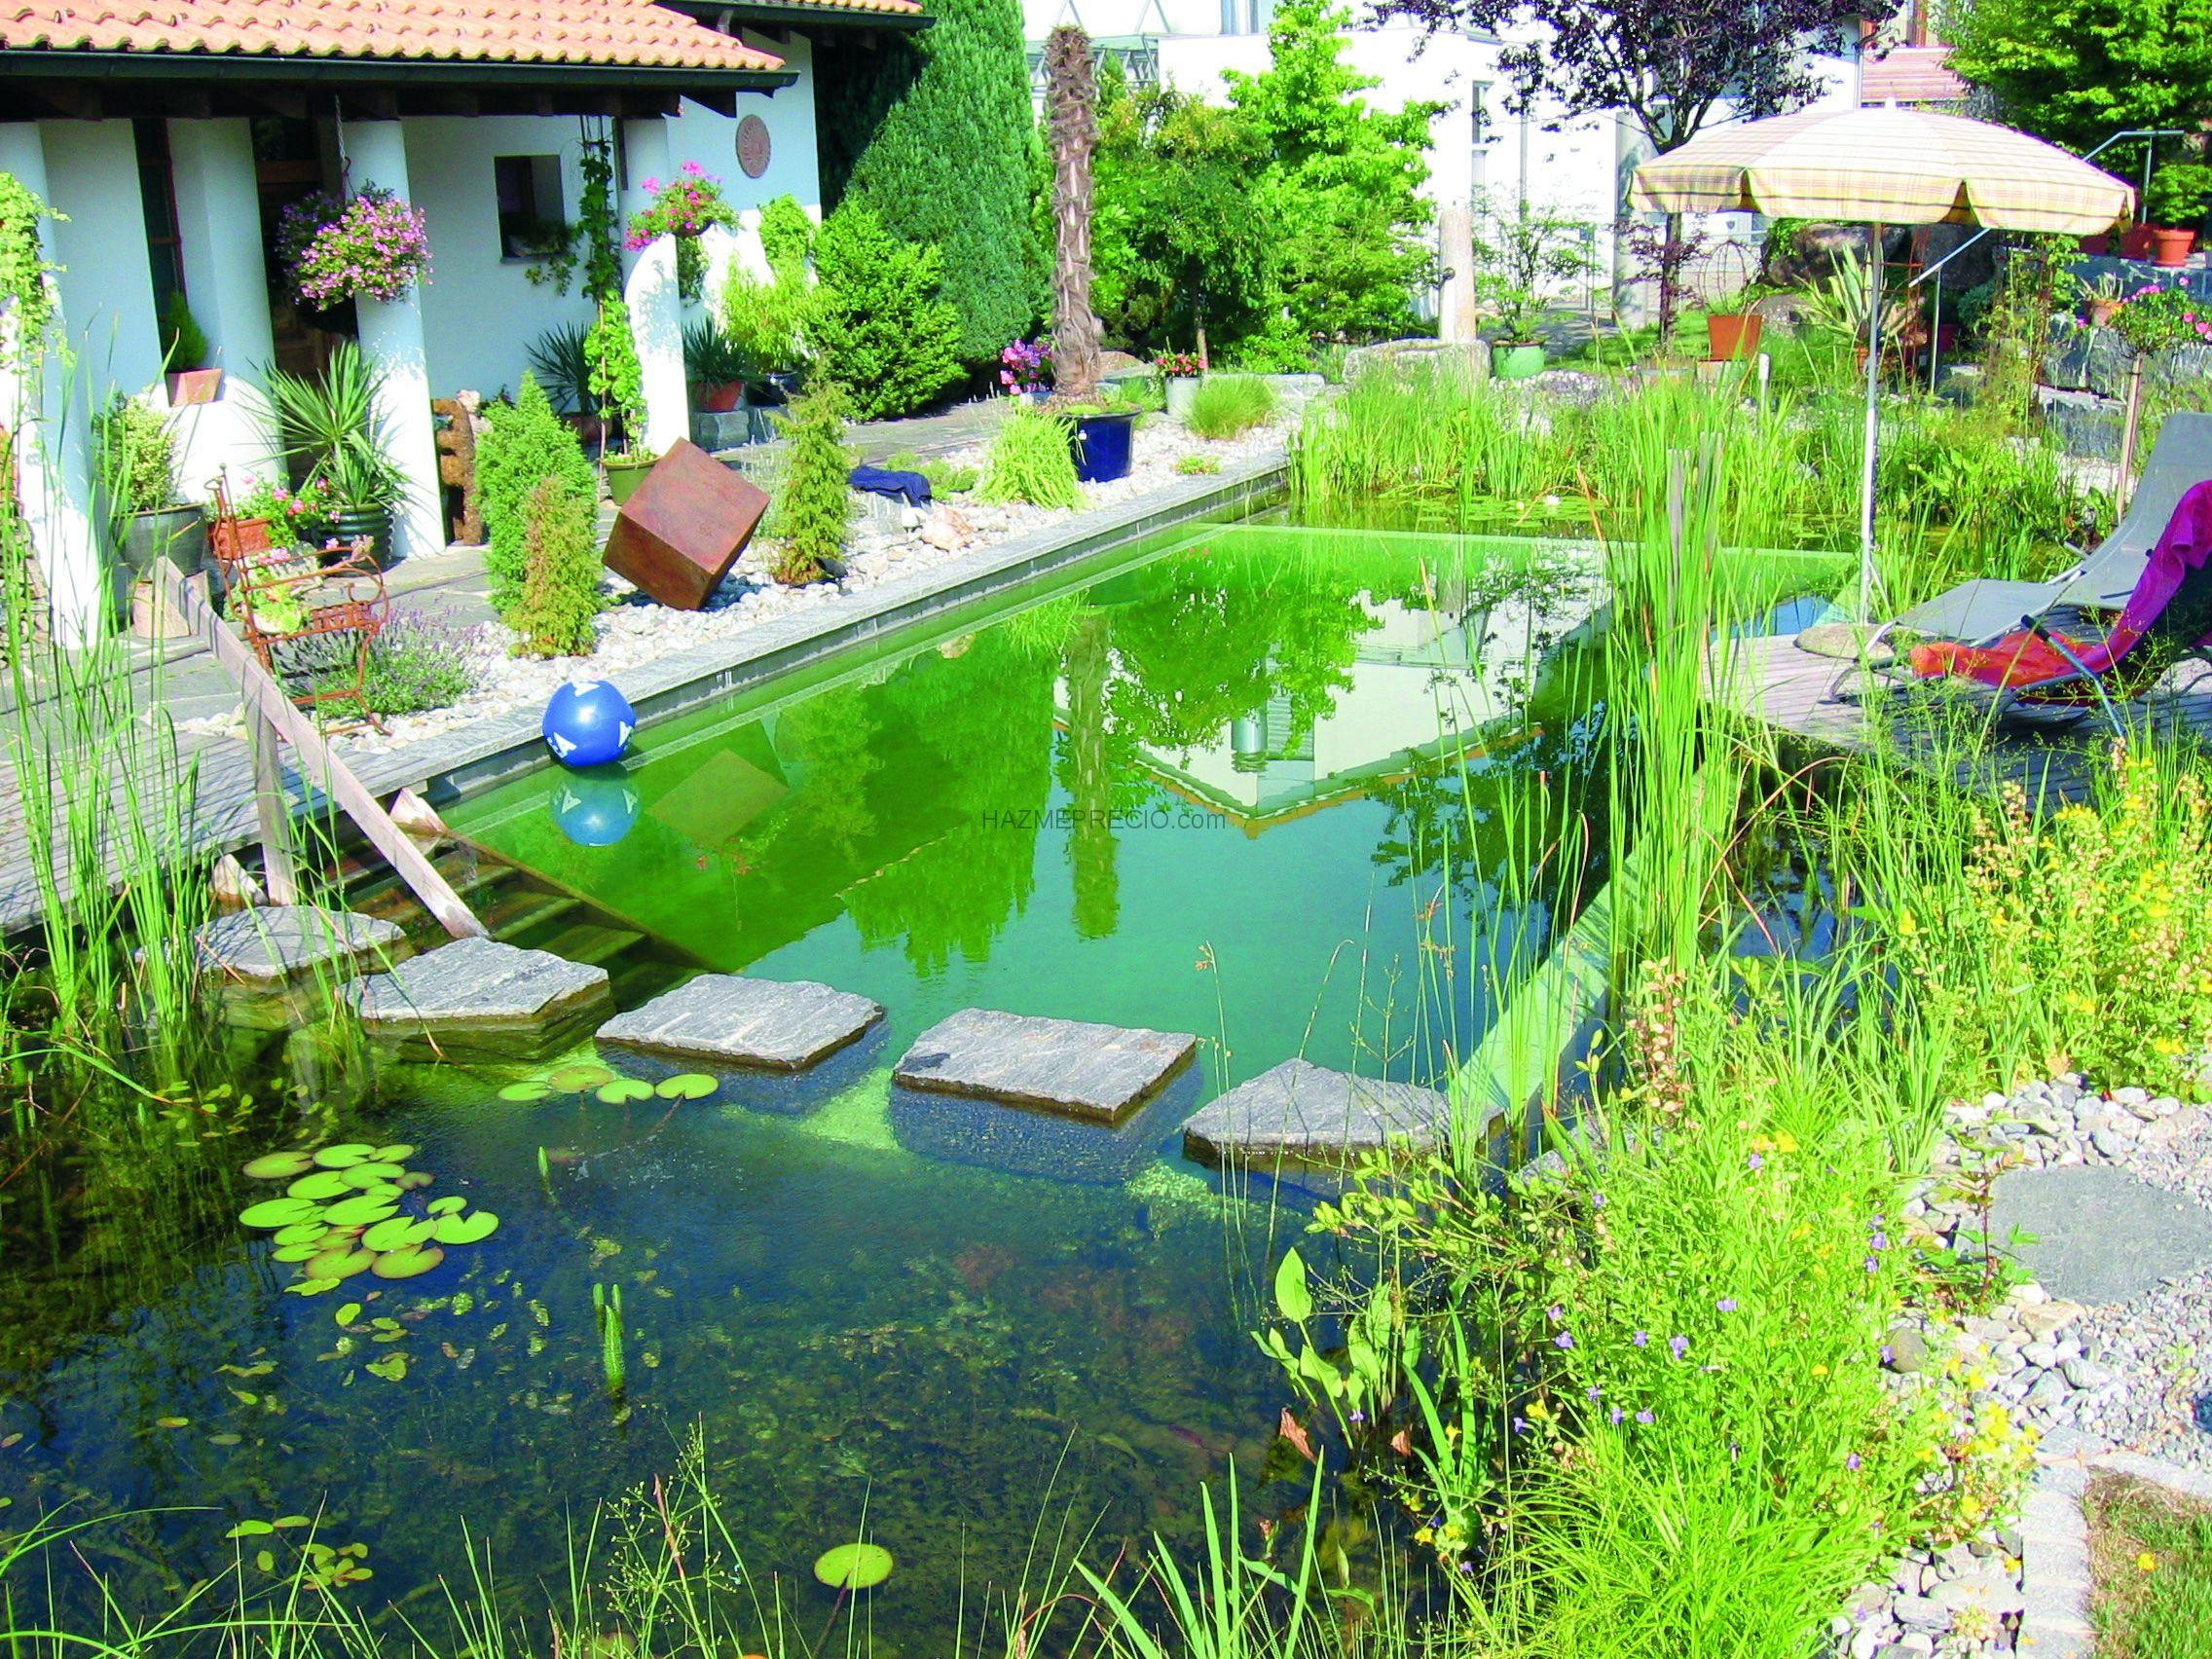 Biopiscinas la alternativa sustentable la red verde for Piscina sustentable